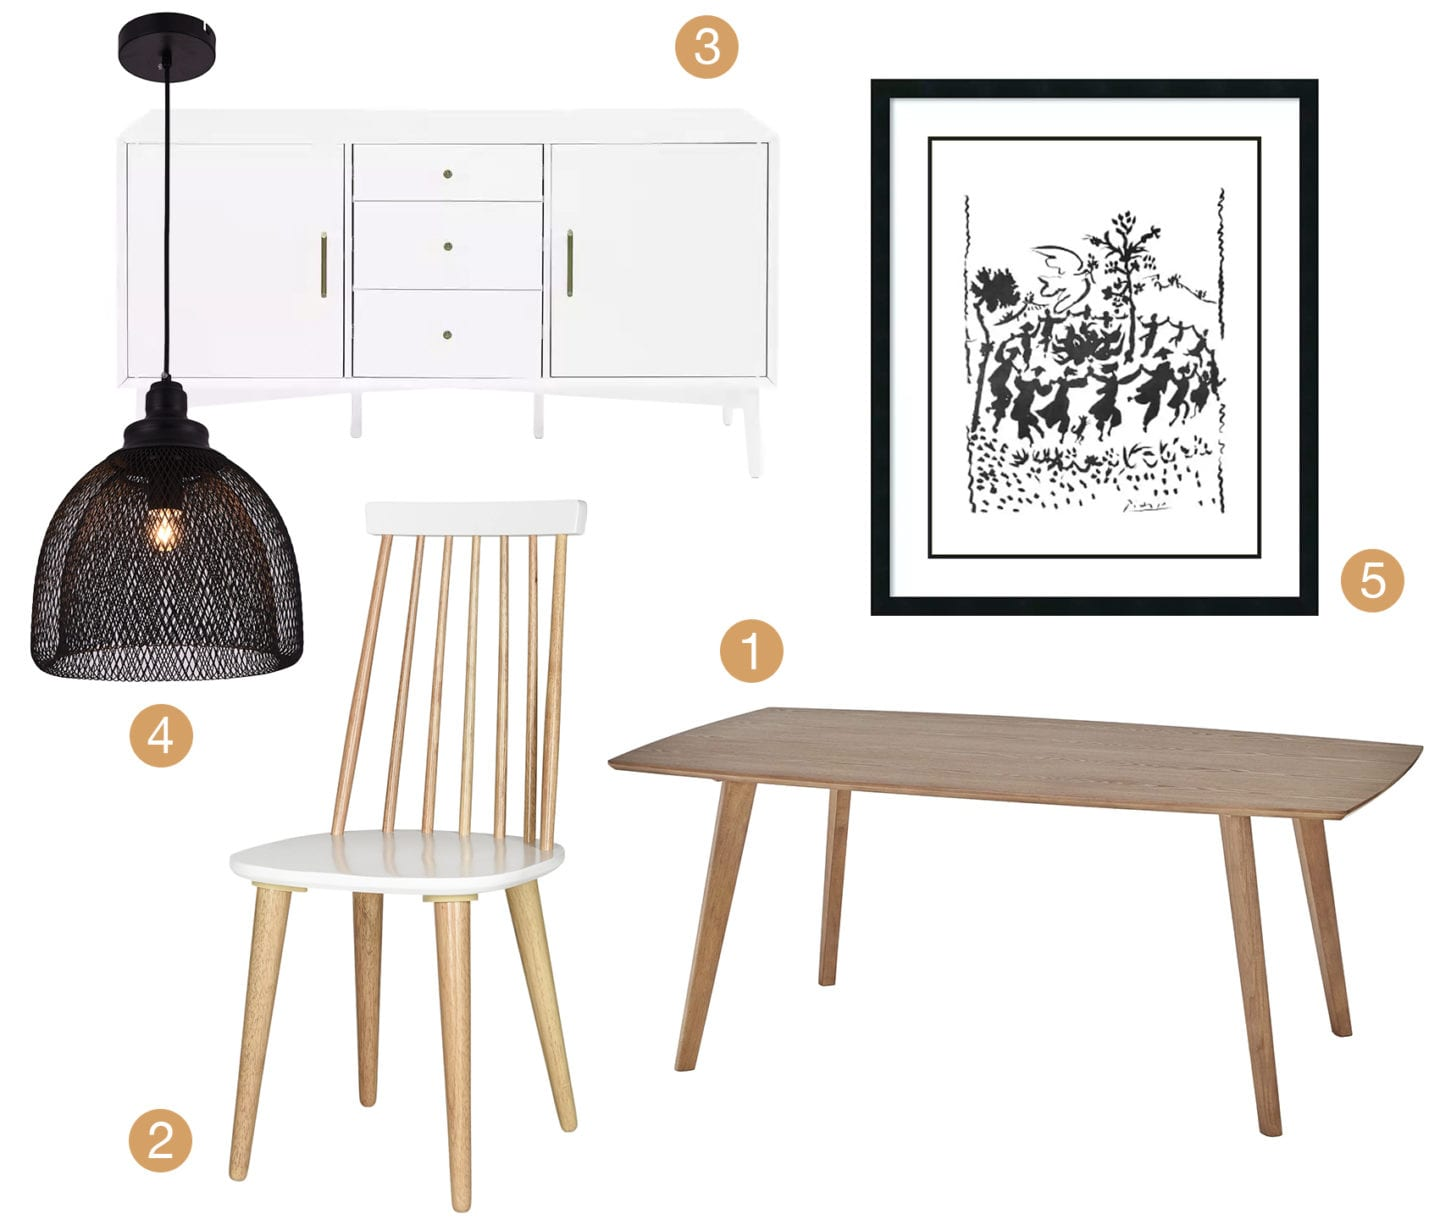 Collage of Minimalist style dining furniture and decor.